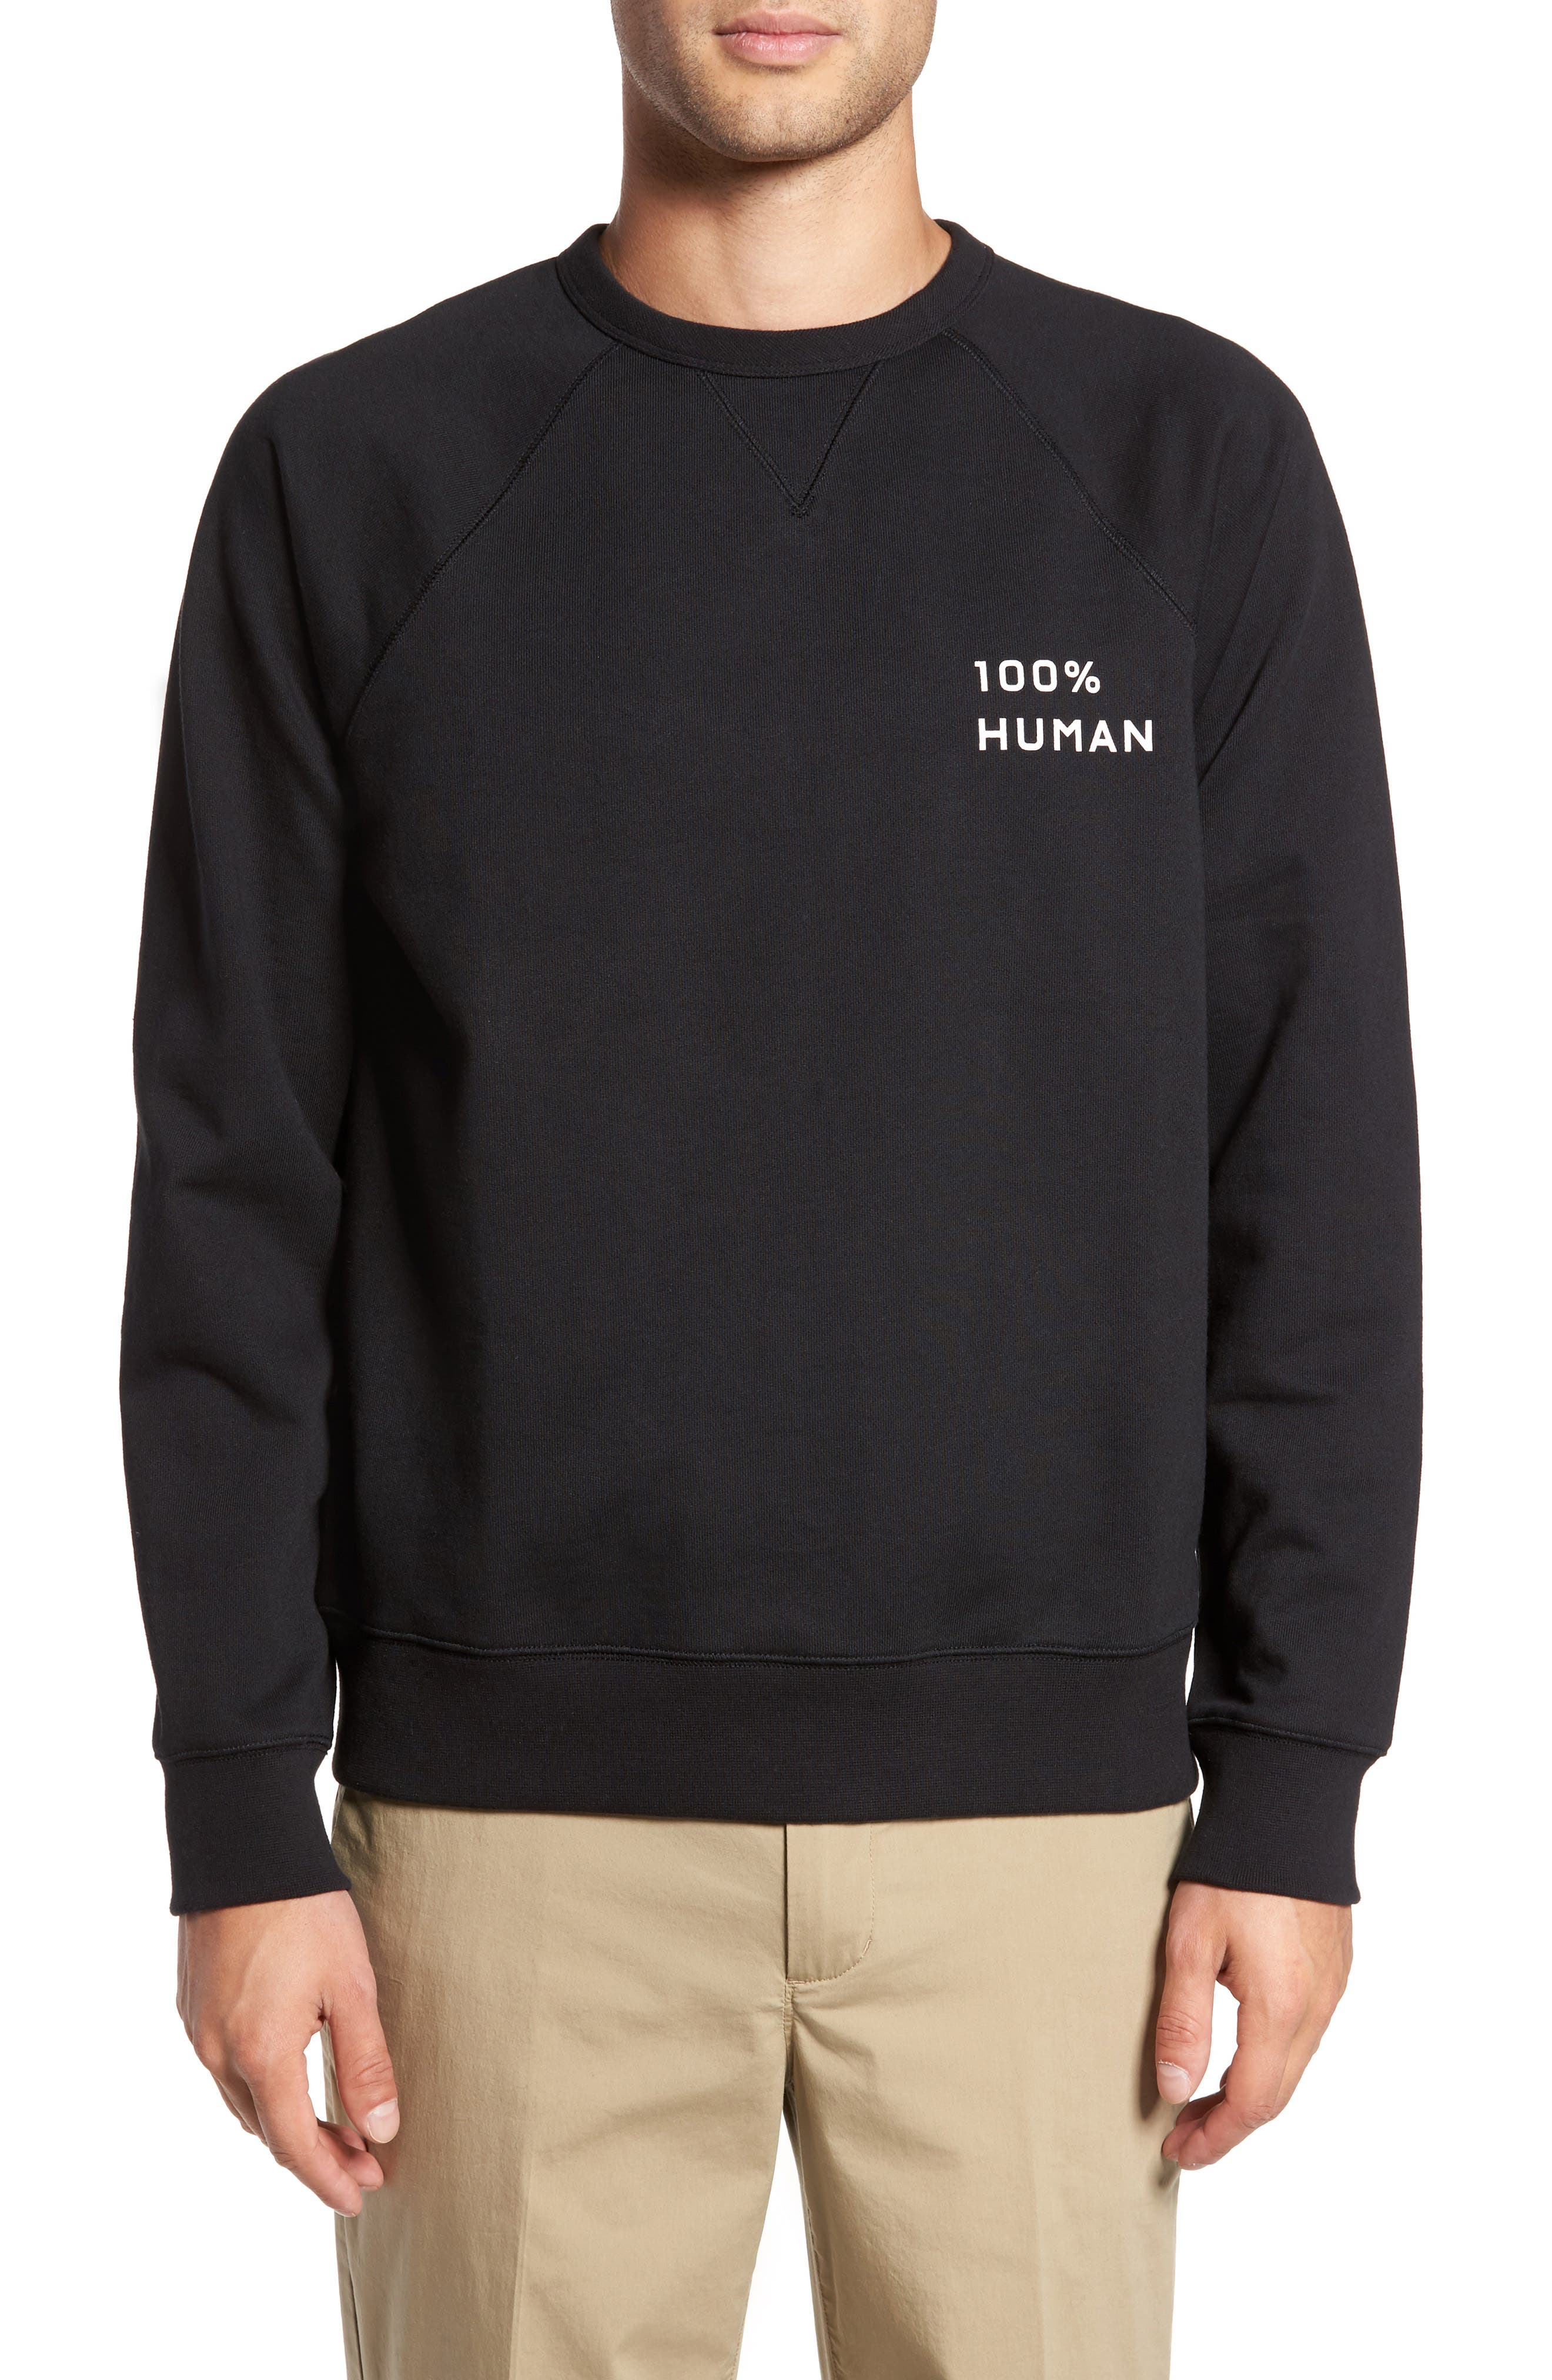 Alternate Image 1 Selected - Everlane The 100% Human Small Print Unisex French Terry Sweatshirt